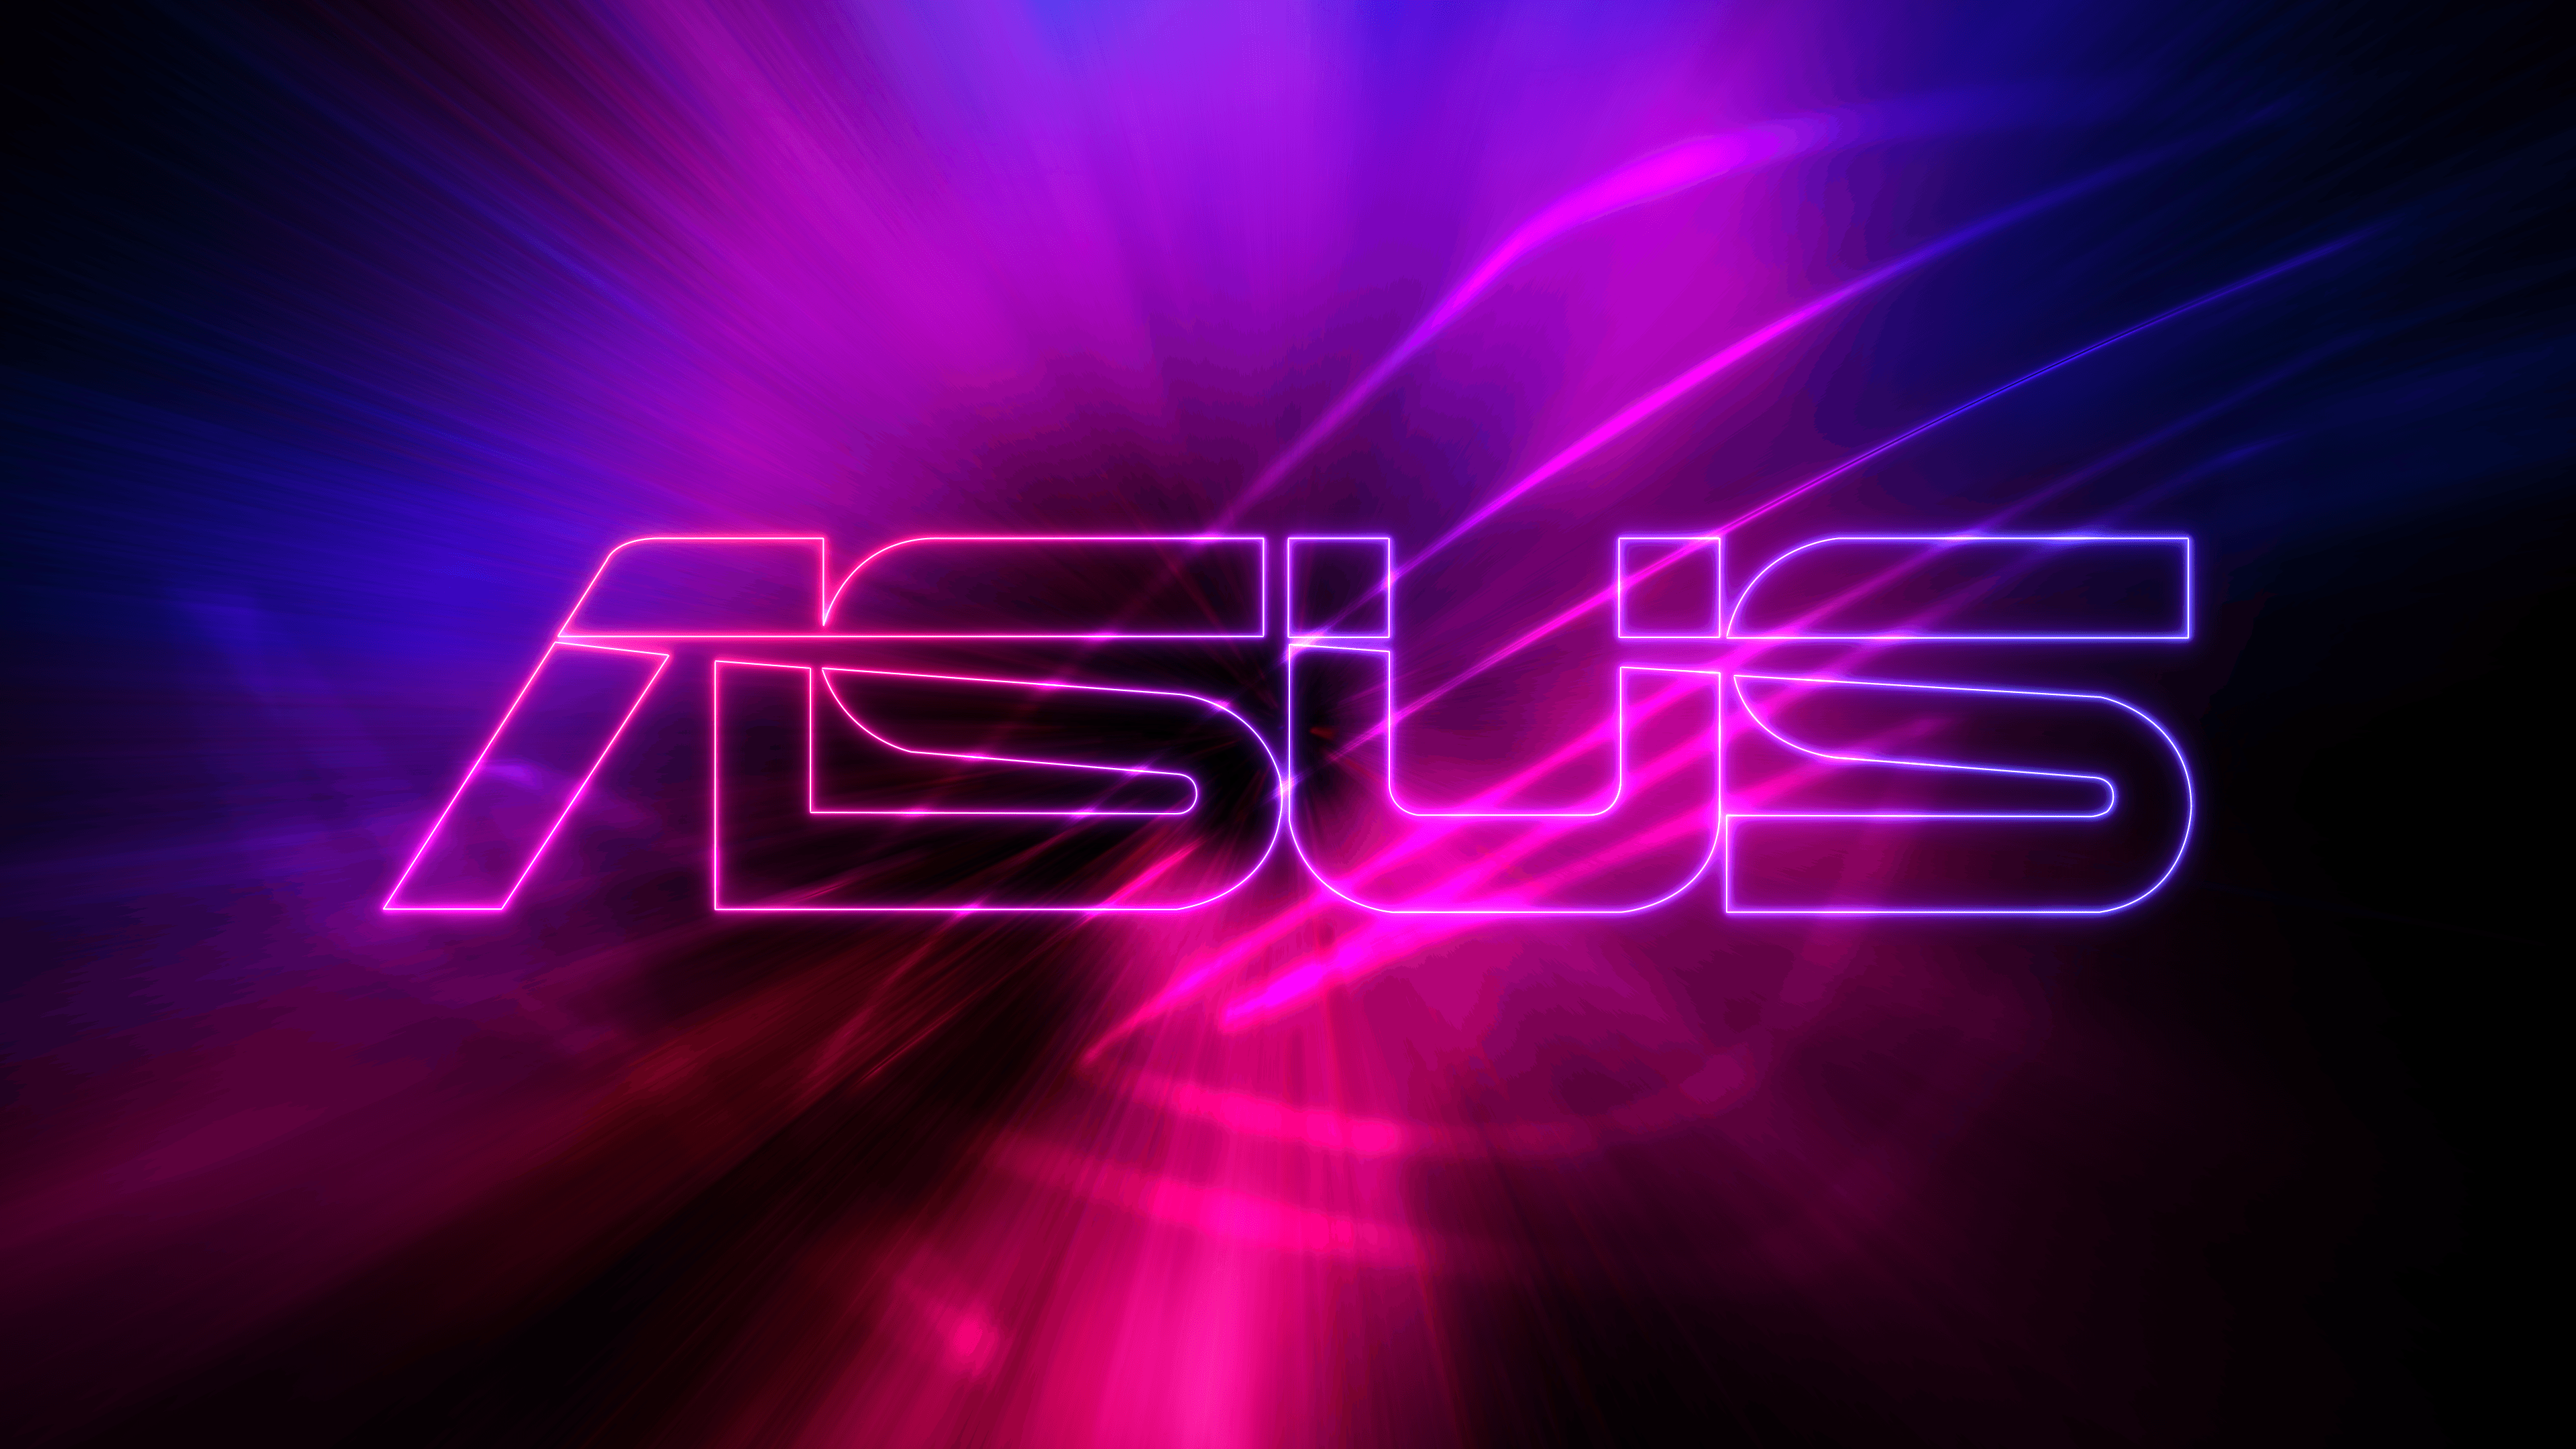 Asus Rog Strix Wallpapers Top Free Asus Rog Strix Backgrounds Wallpaperaccess